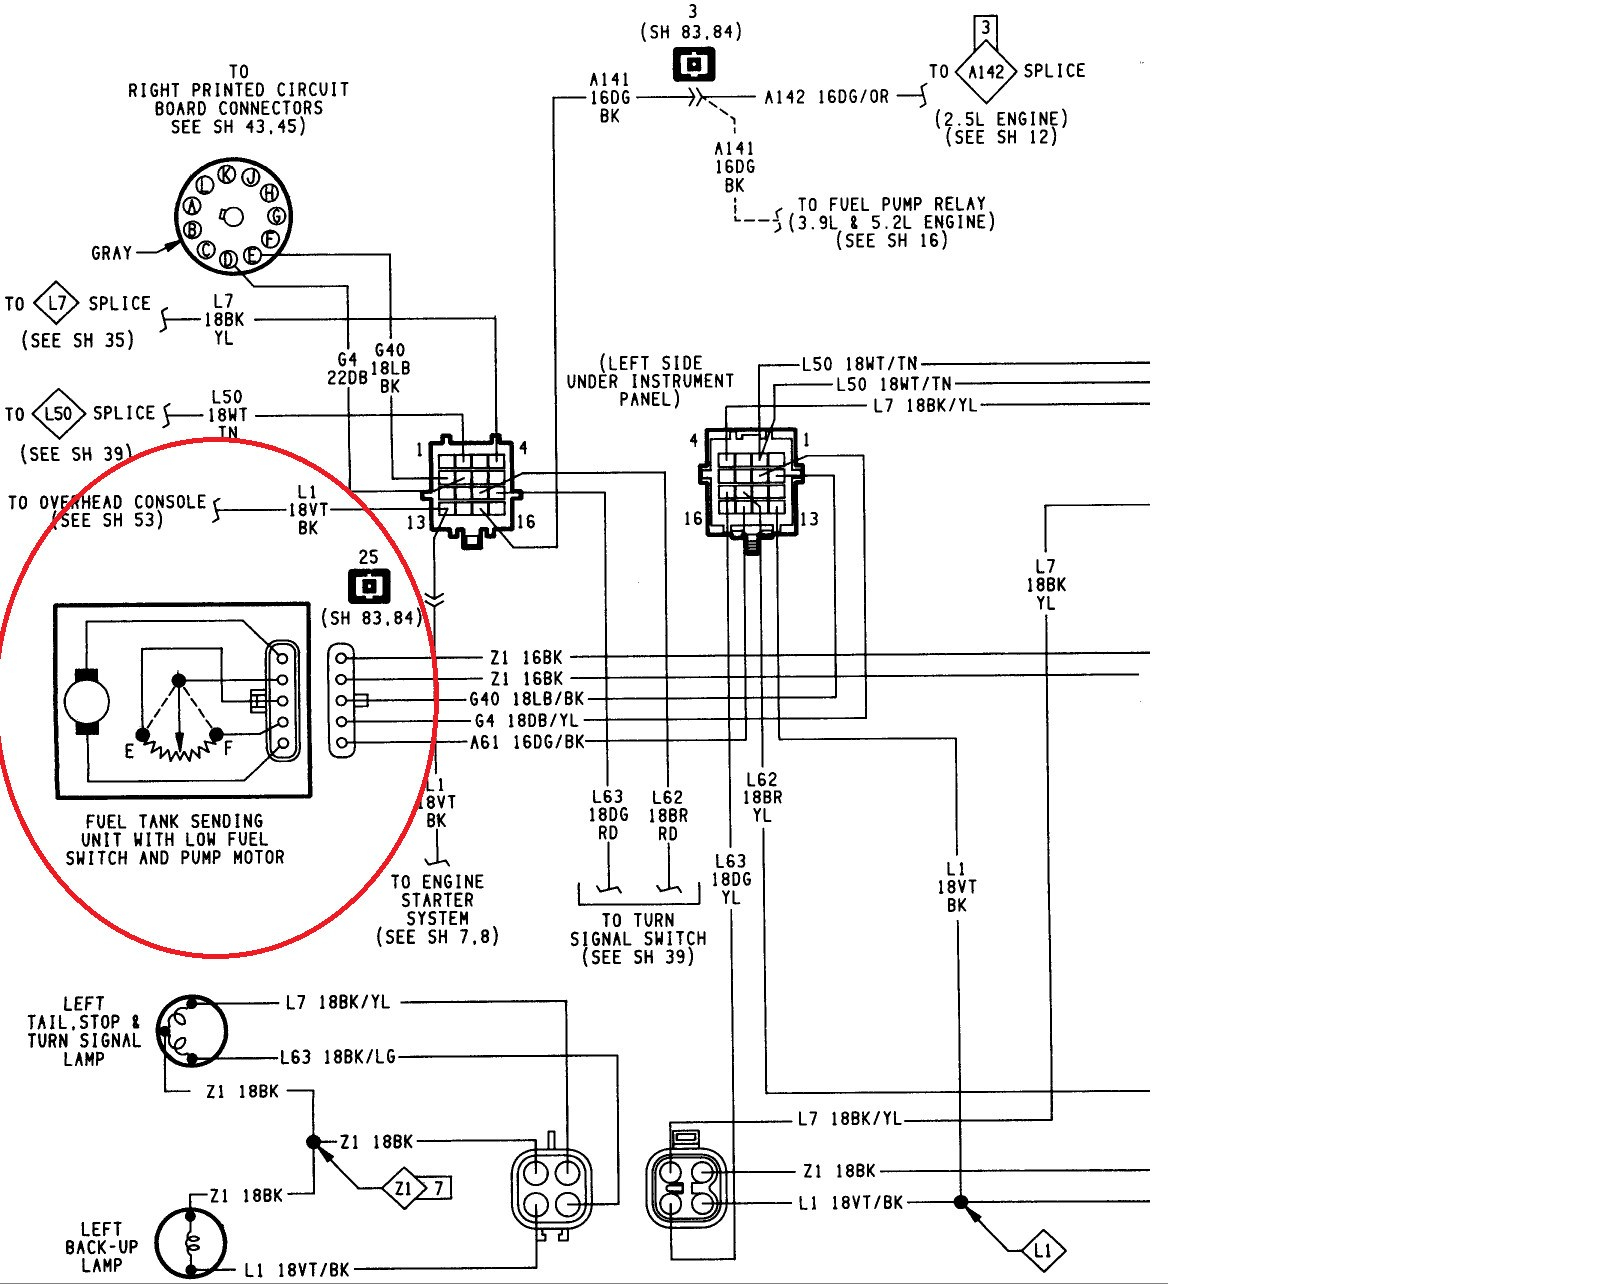 ☑ 50 merc fuel sending unit wiring diagram hd quality ☑  booch-ood.altalangaleader.it  diagram database